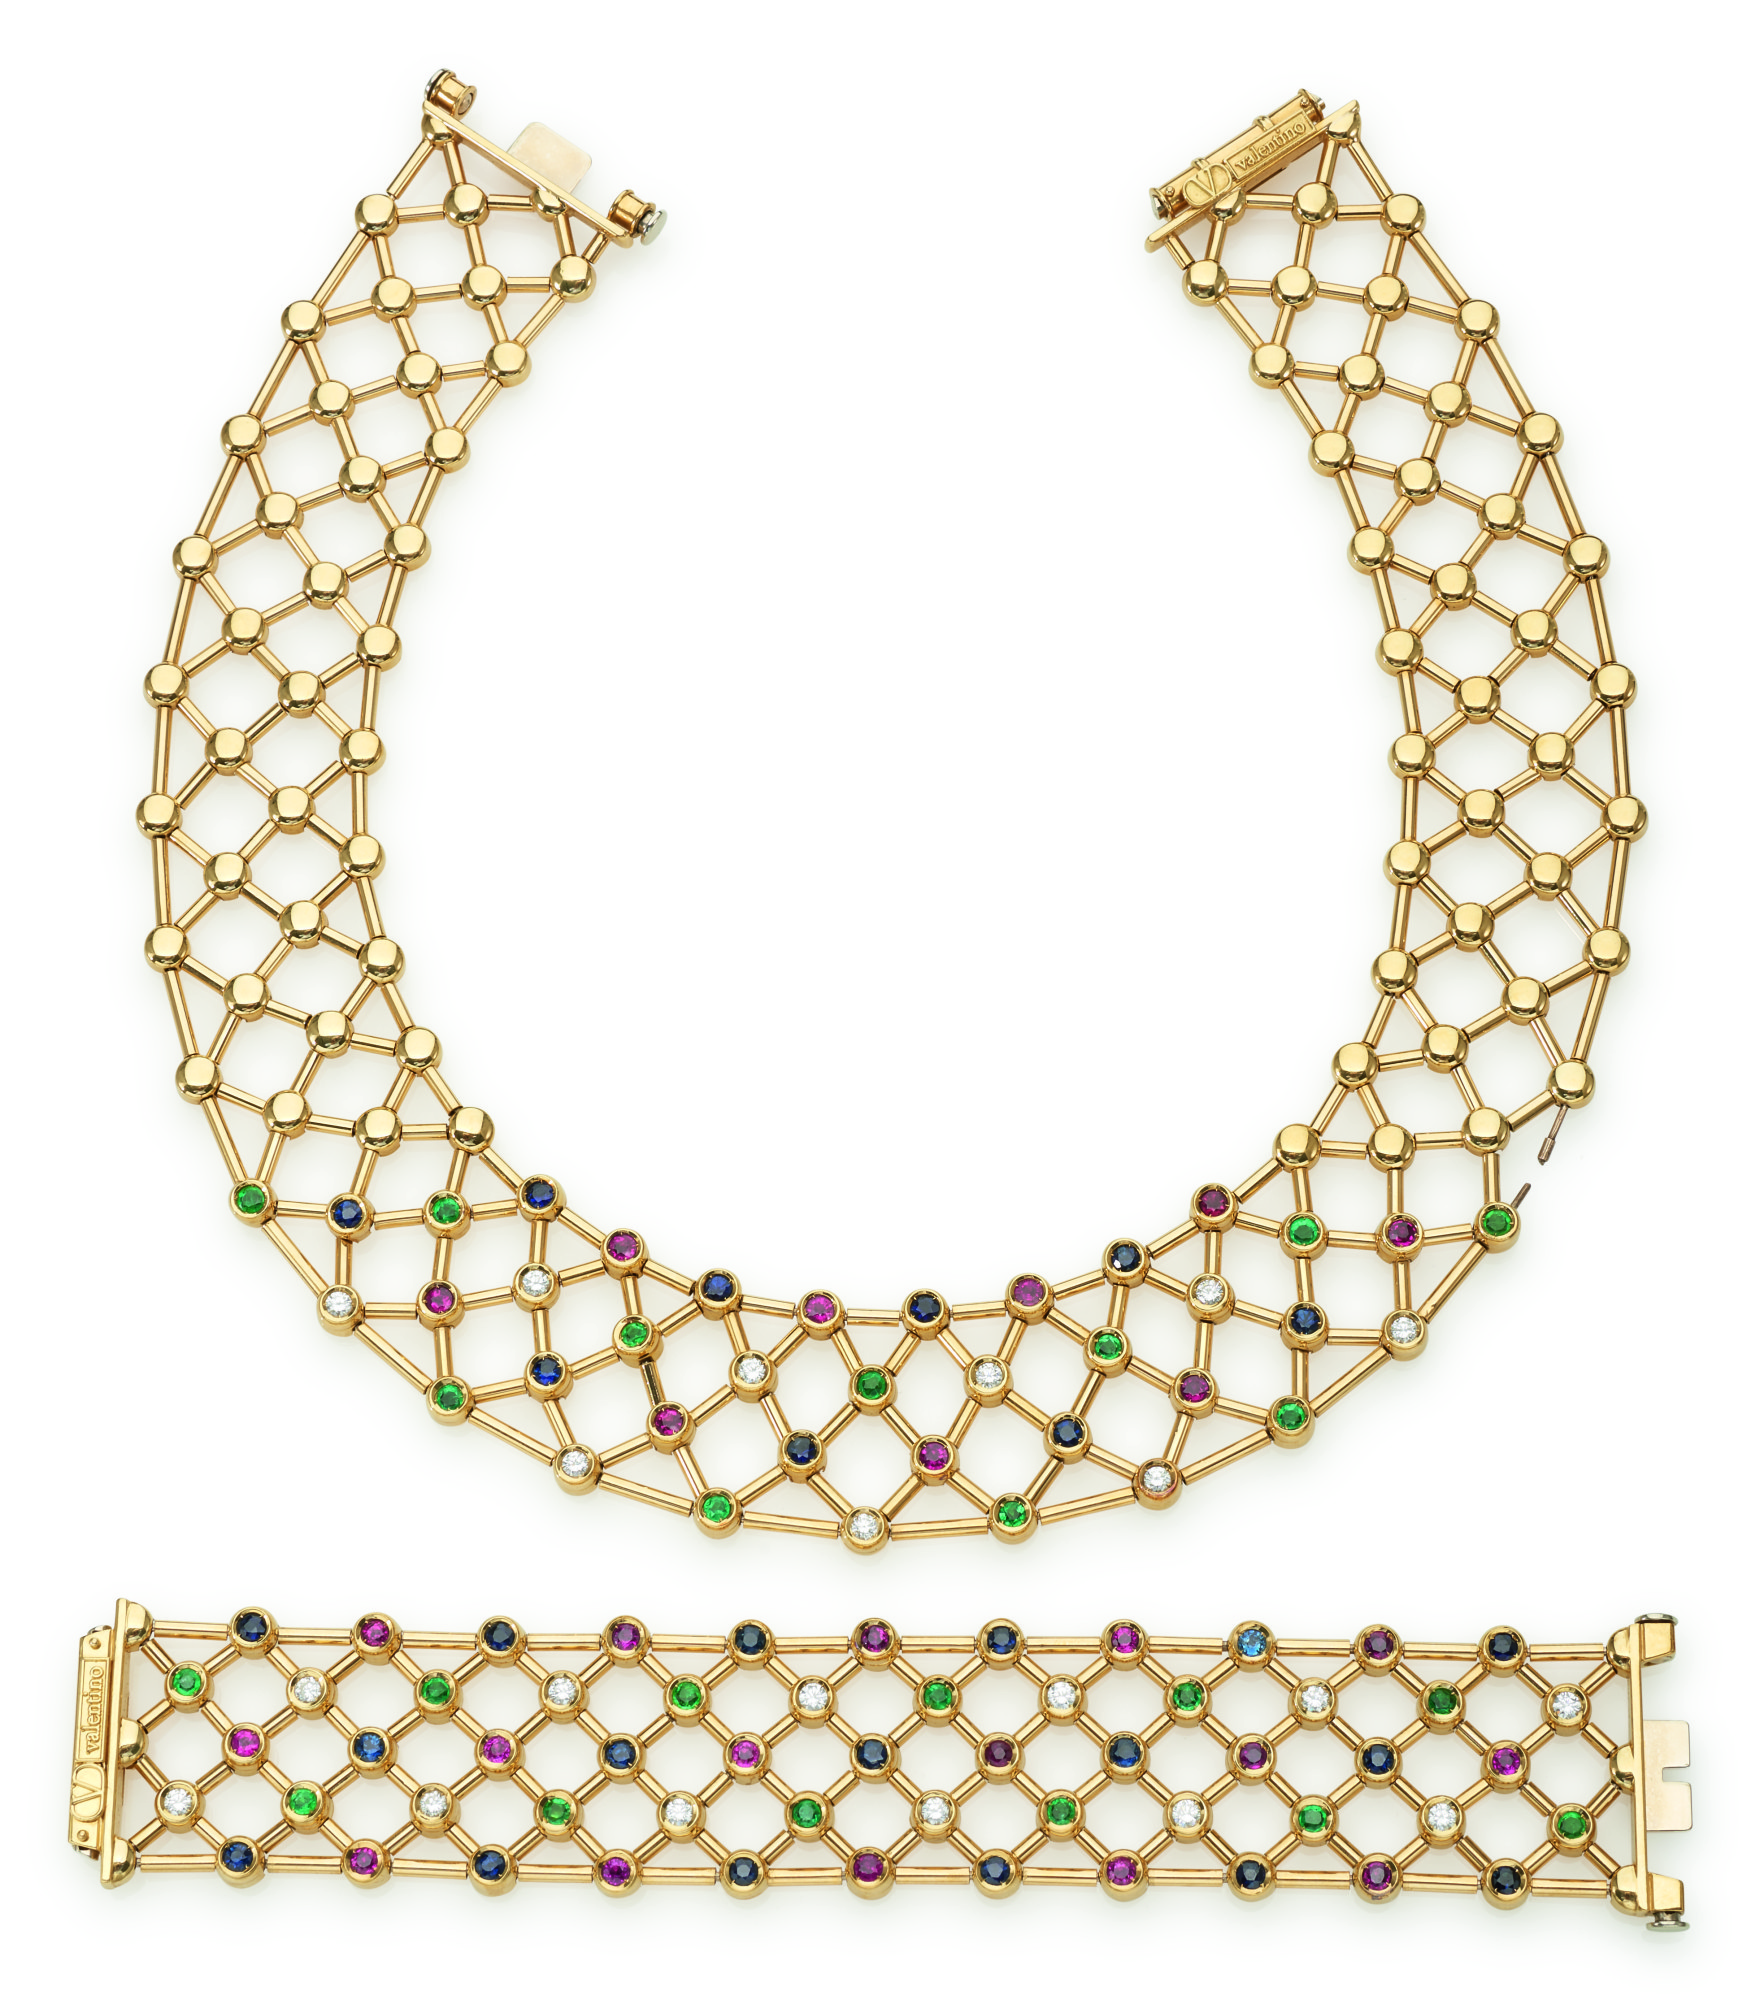 RUBY, EMERALD, SAPPHIRE AND DIAMOND NECKLACE AND BRACELET (COLLANA E BRACCIALE IN RUBINI, SMERALDI, ZAFFIRI E DIAMANTI), VALENTINO